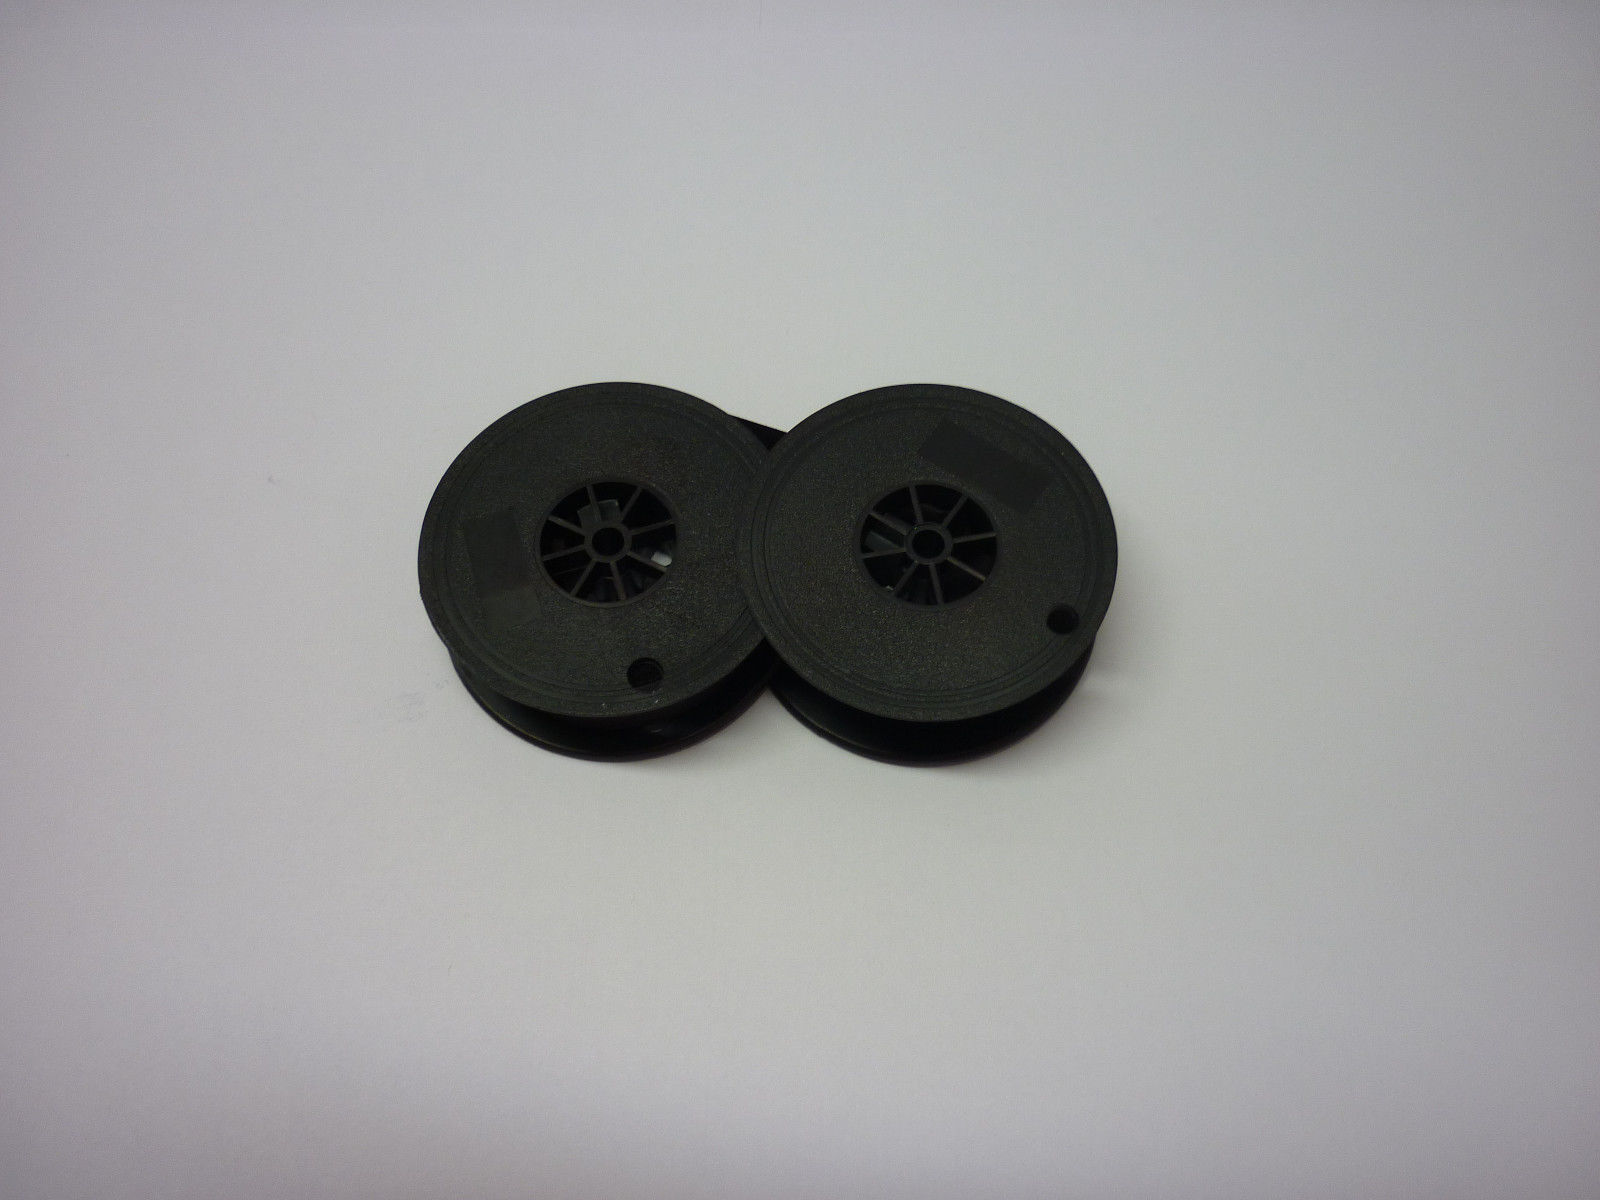 Olivetti Underwood Typewriter Ribbon Black Twin Spool